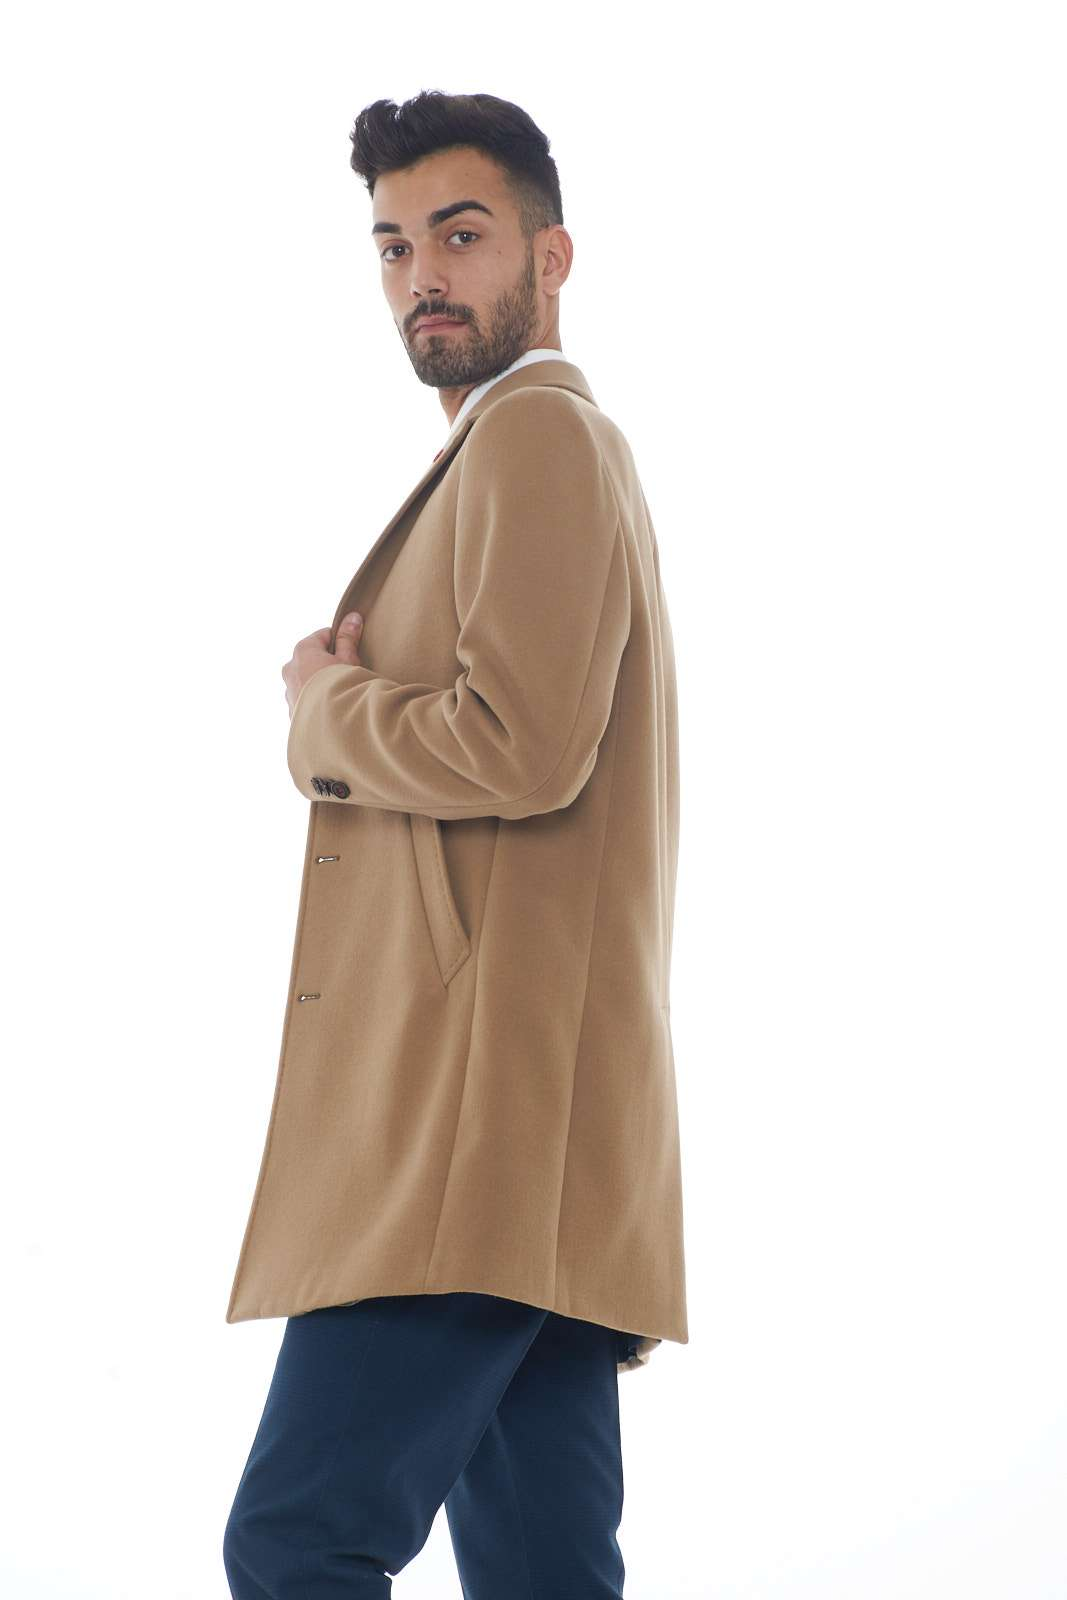 https://www.parmax.com/media/catalog/product/a/i/AI-outlet_parmax-cappotto-uomo-Manuel-Ritz-2732C4448%20193727-B.jpg